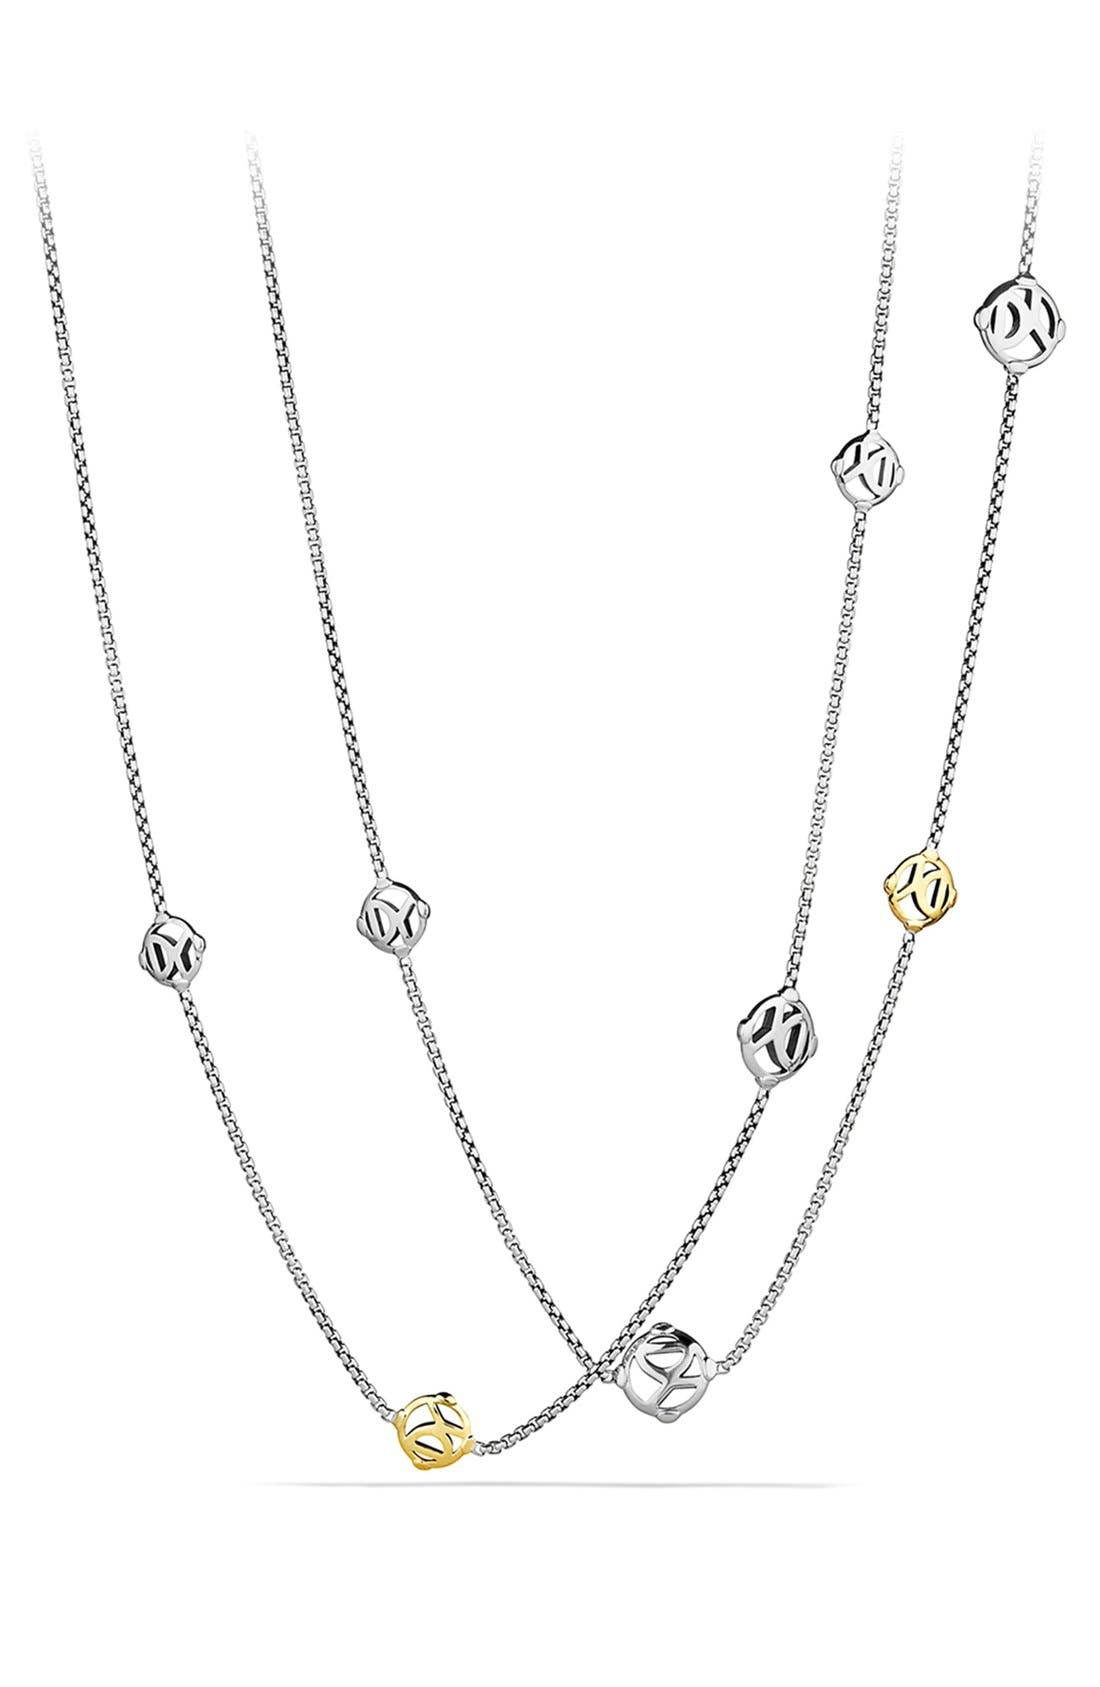 'Chain' DY Logo Chain Necklace with Gold,                             Alternate thumbnail 2, color,                             040